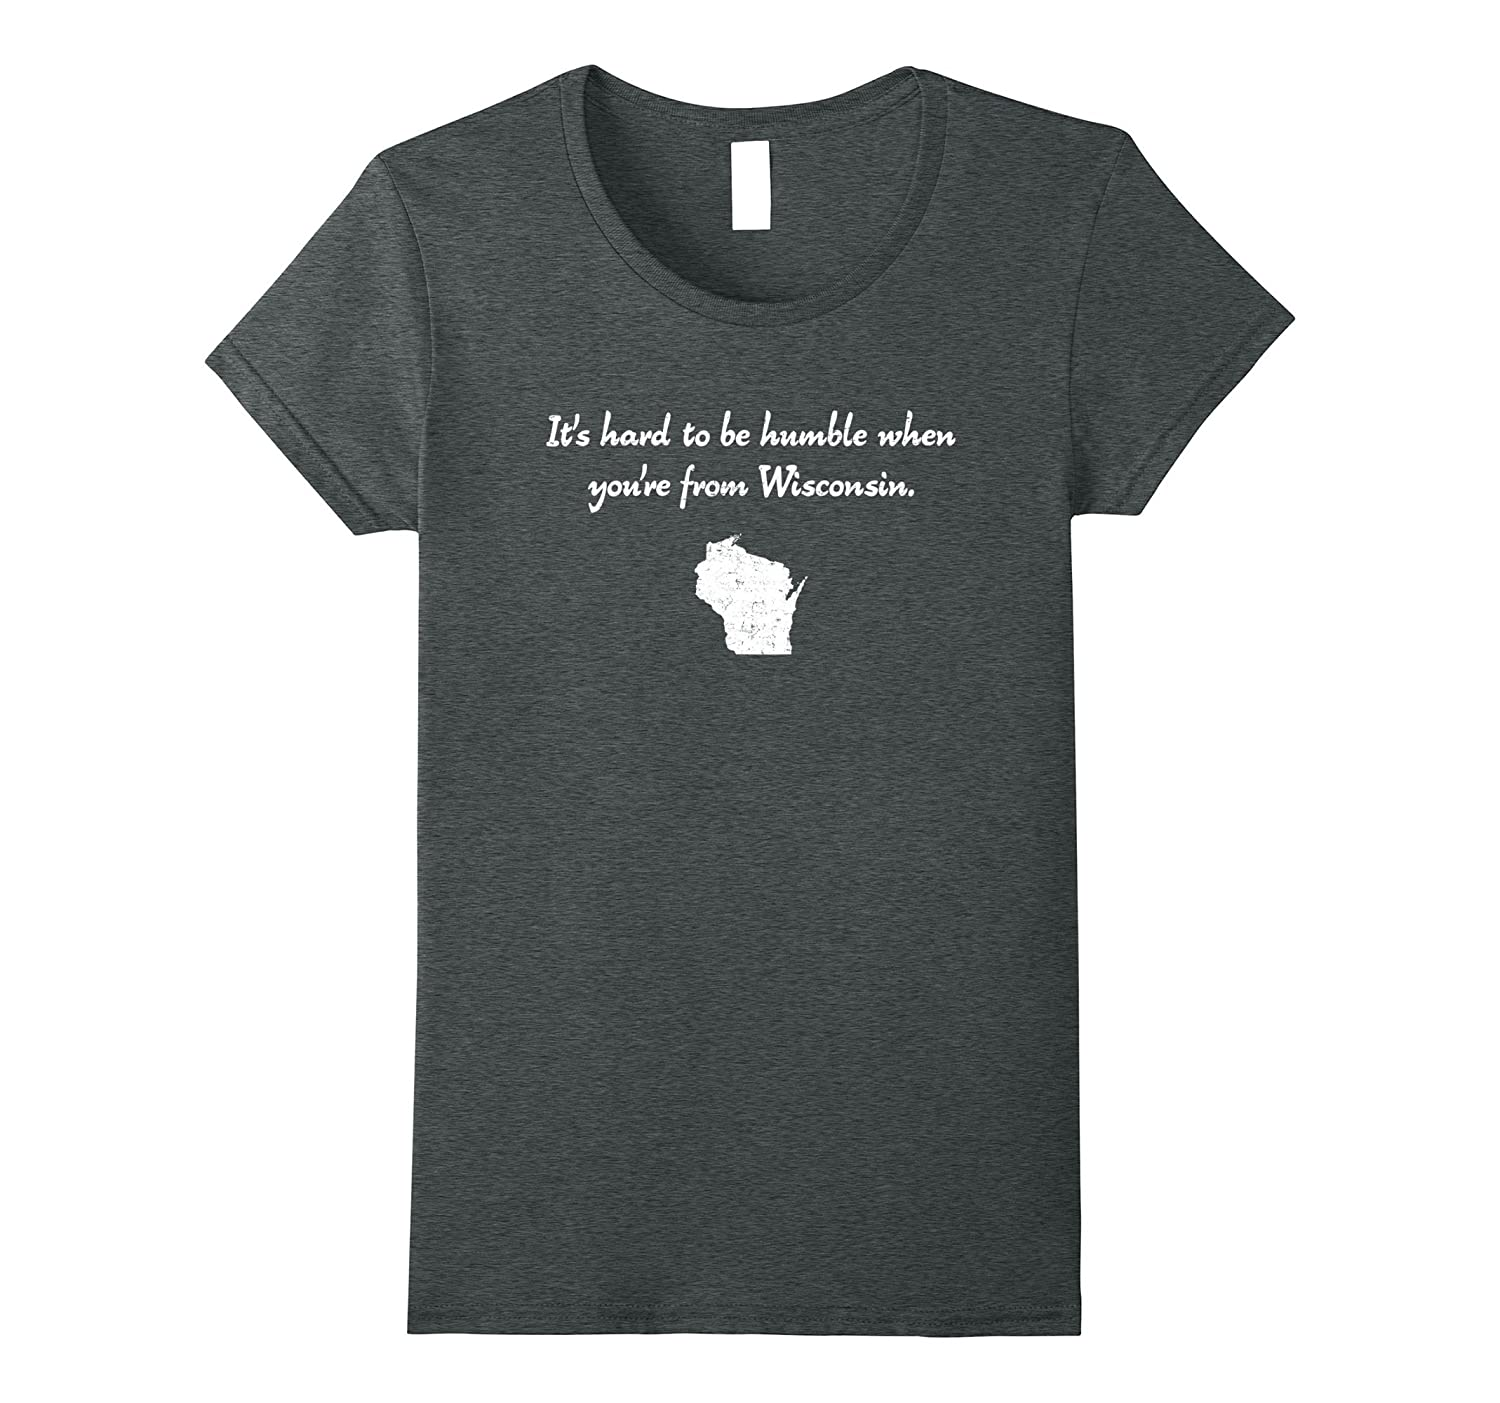 """It's hard to be humble when you're from Wisconsin"" t-shirt"